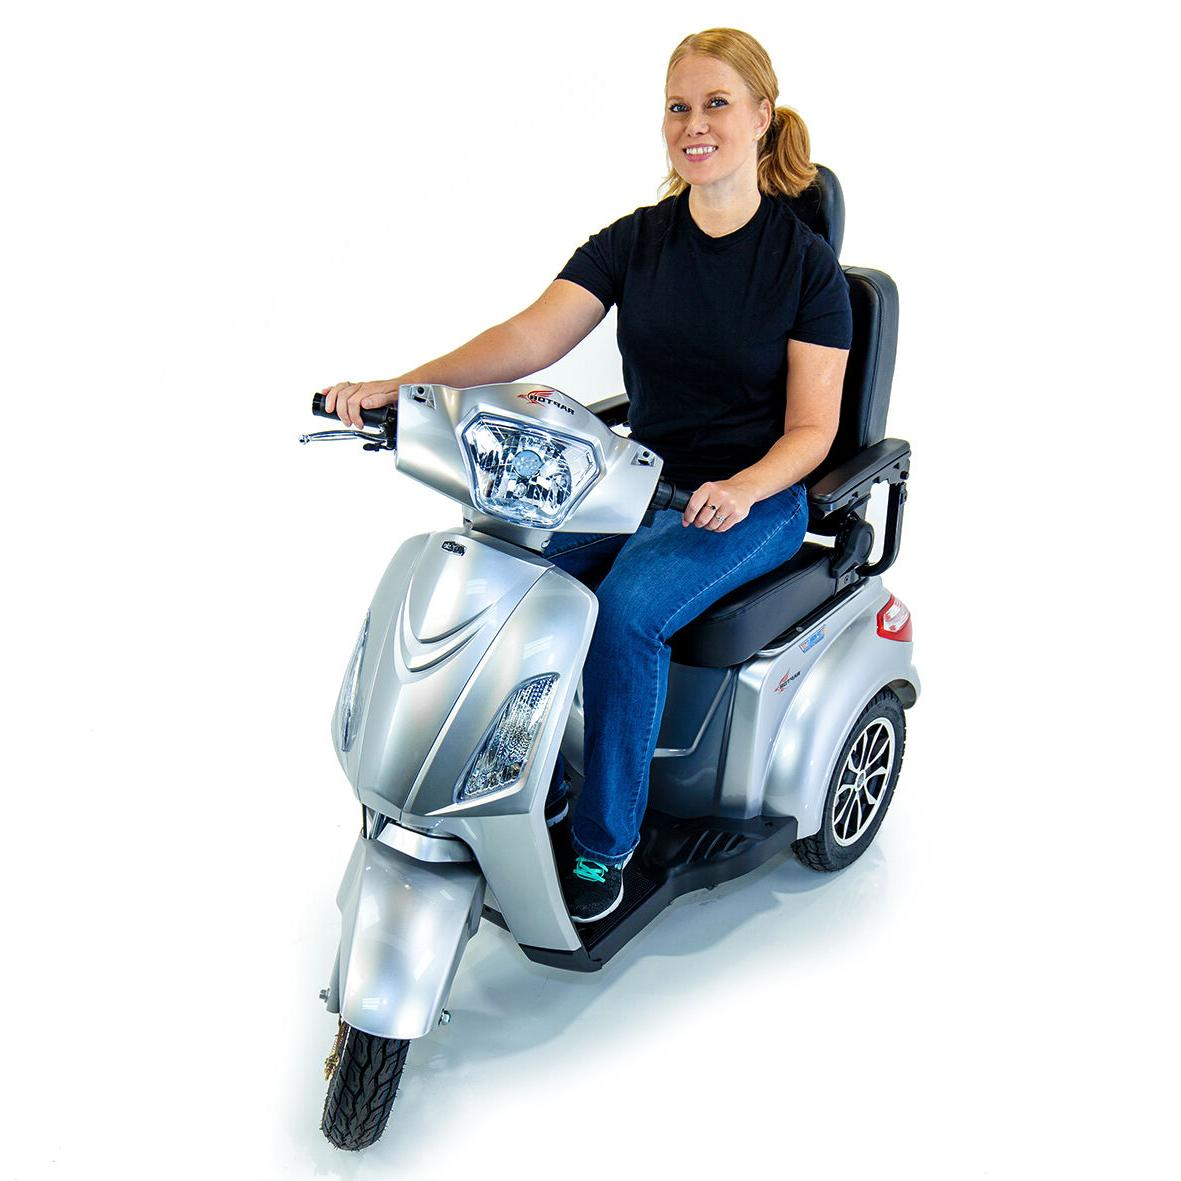 Pride RAPTOR Recreational Power Mobility Scooter w/ Electric Safety Brakes